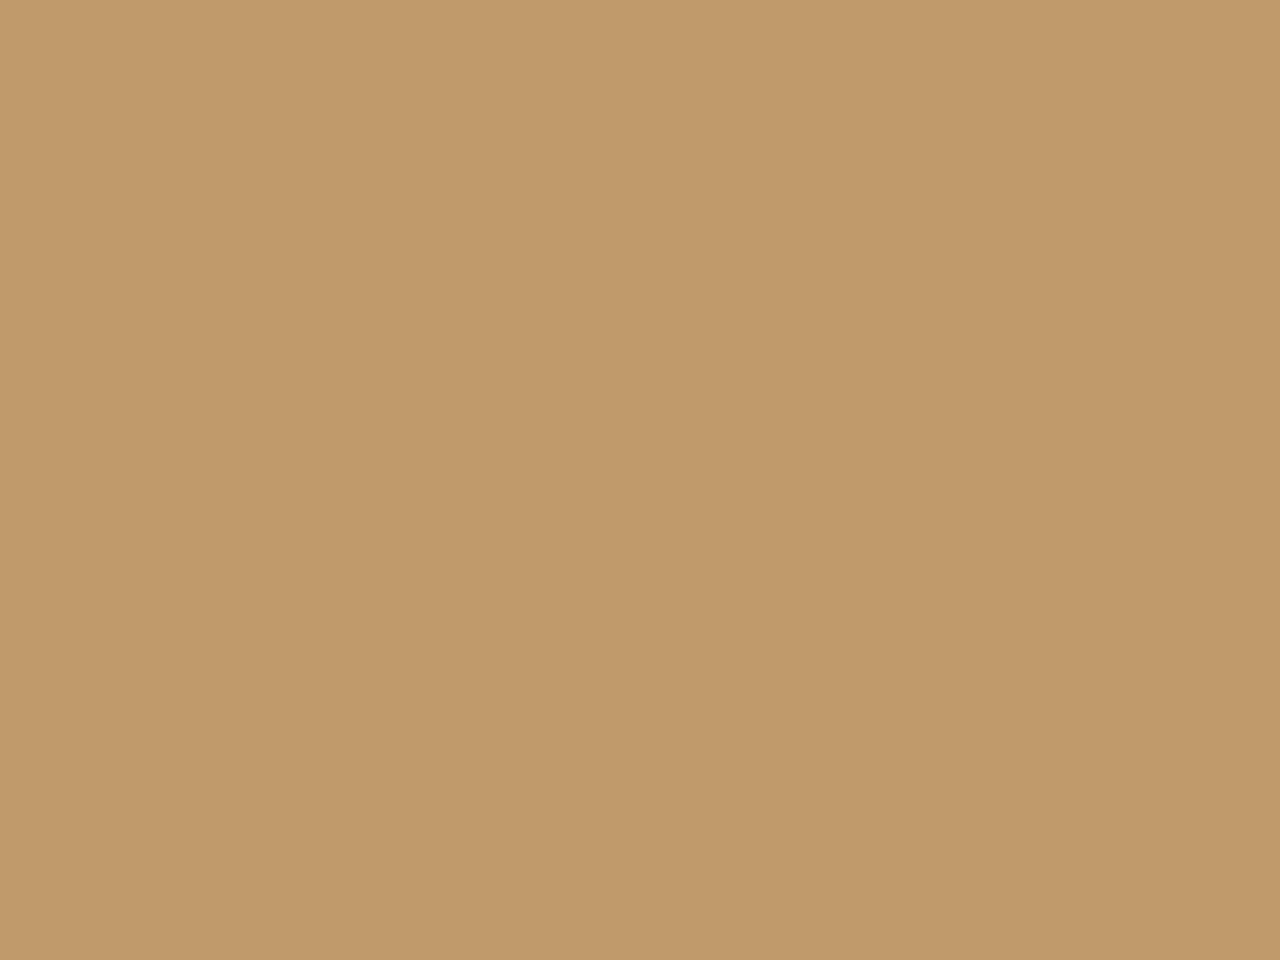 1280x960 Camel Solid Color Background